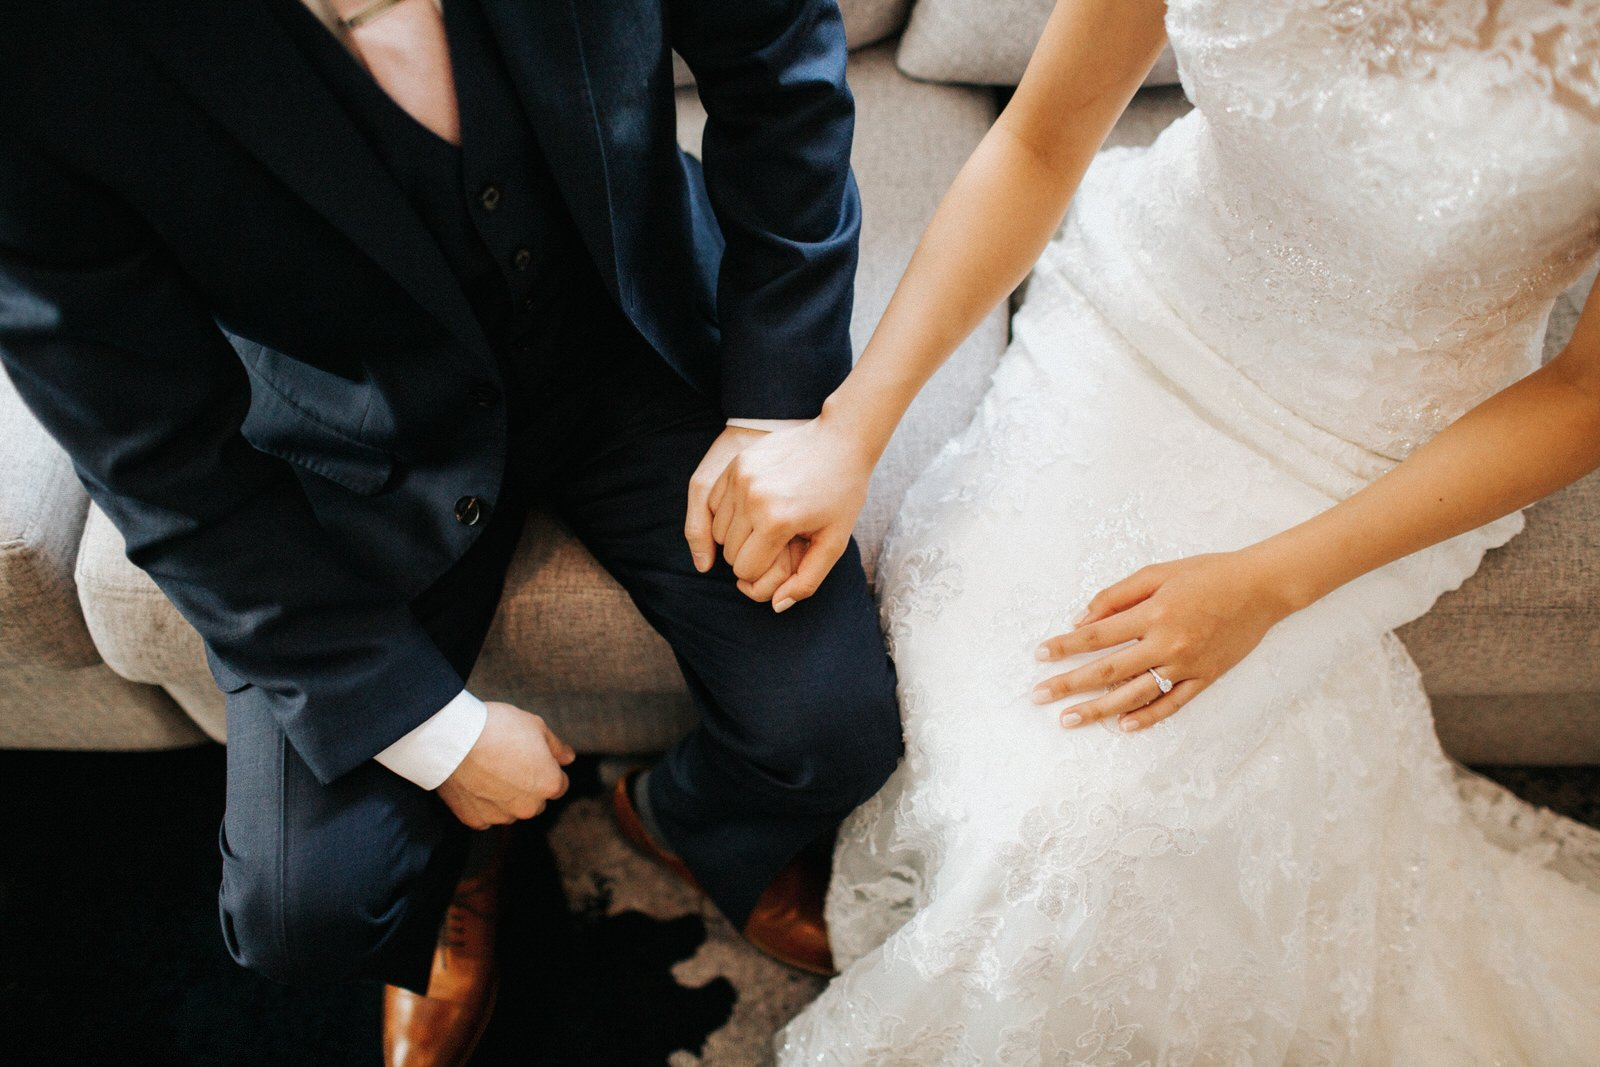 The couple holds hands on a couch